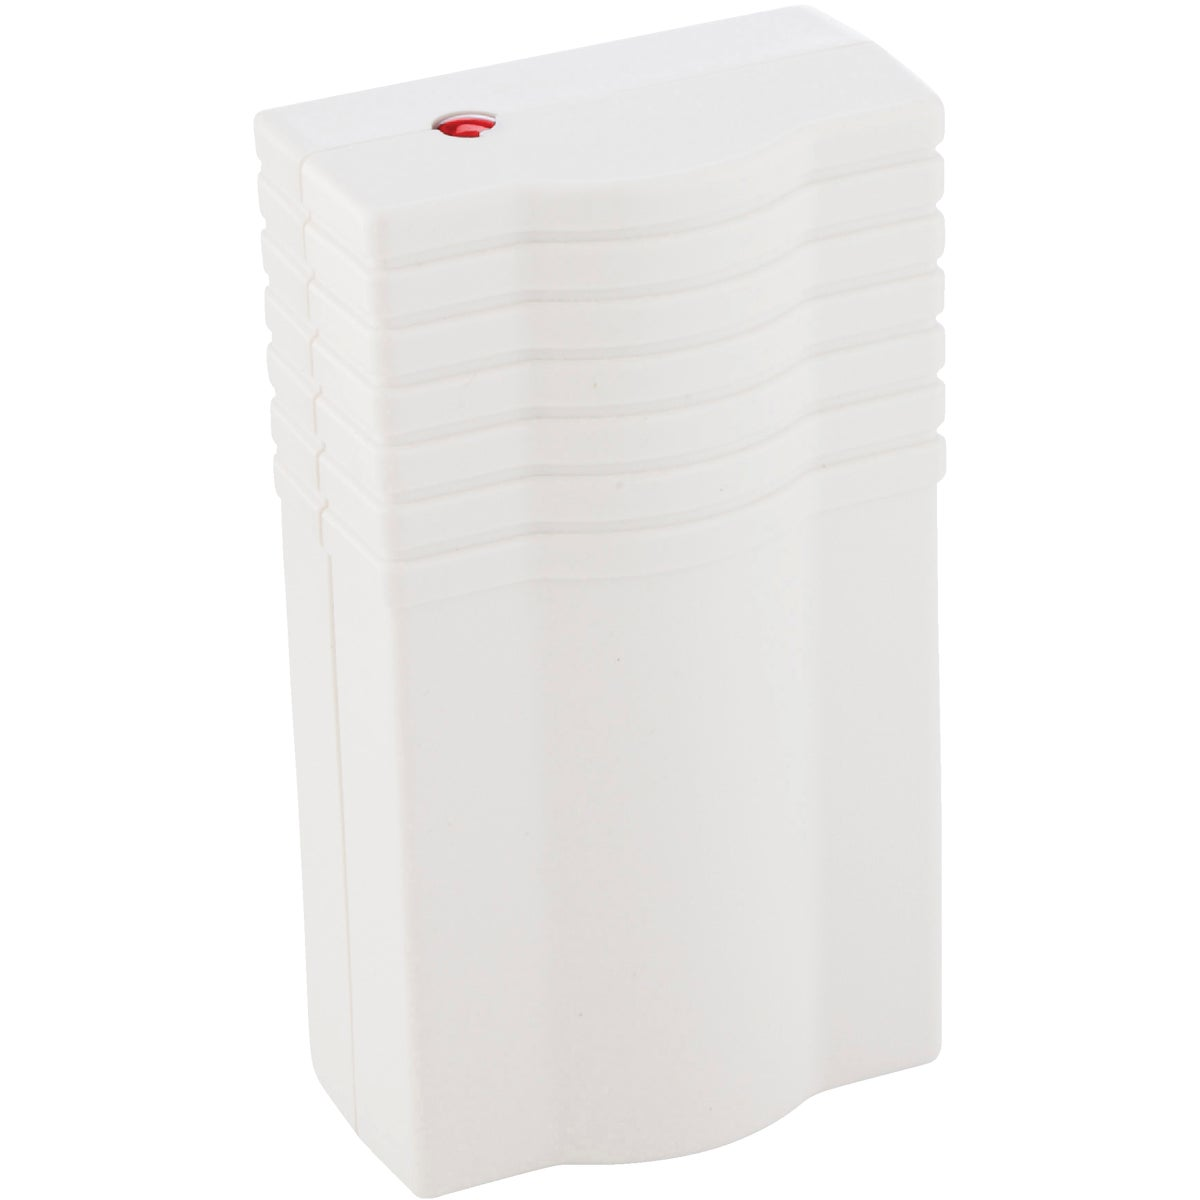 ULTRASONIC PEST REPELLER - 2100 by Global Instruments